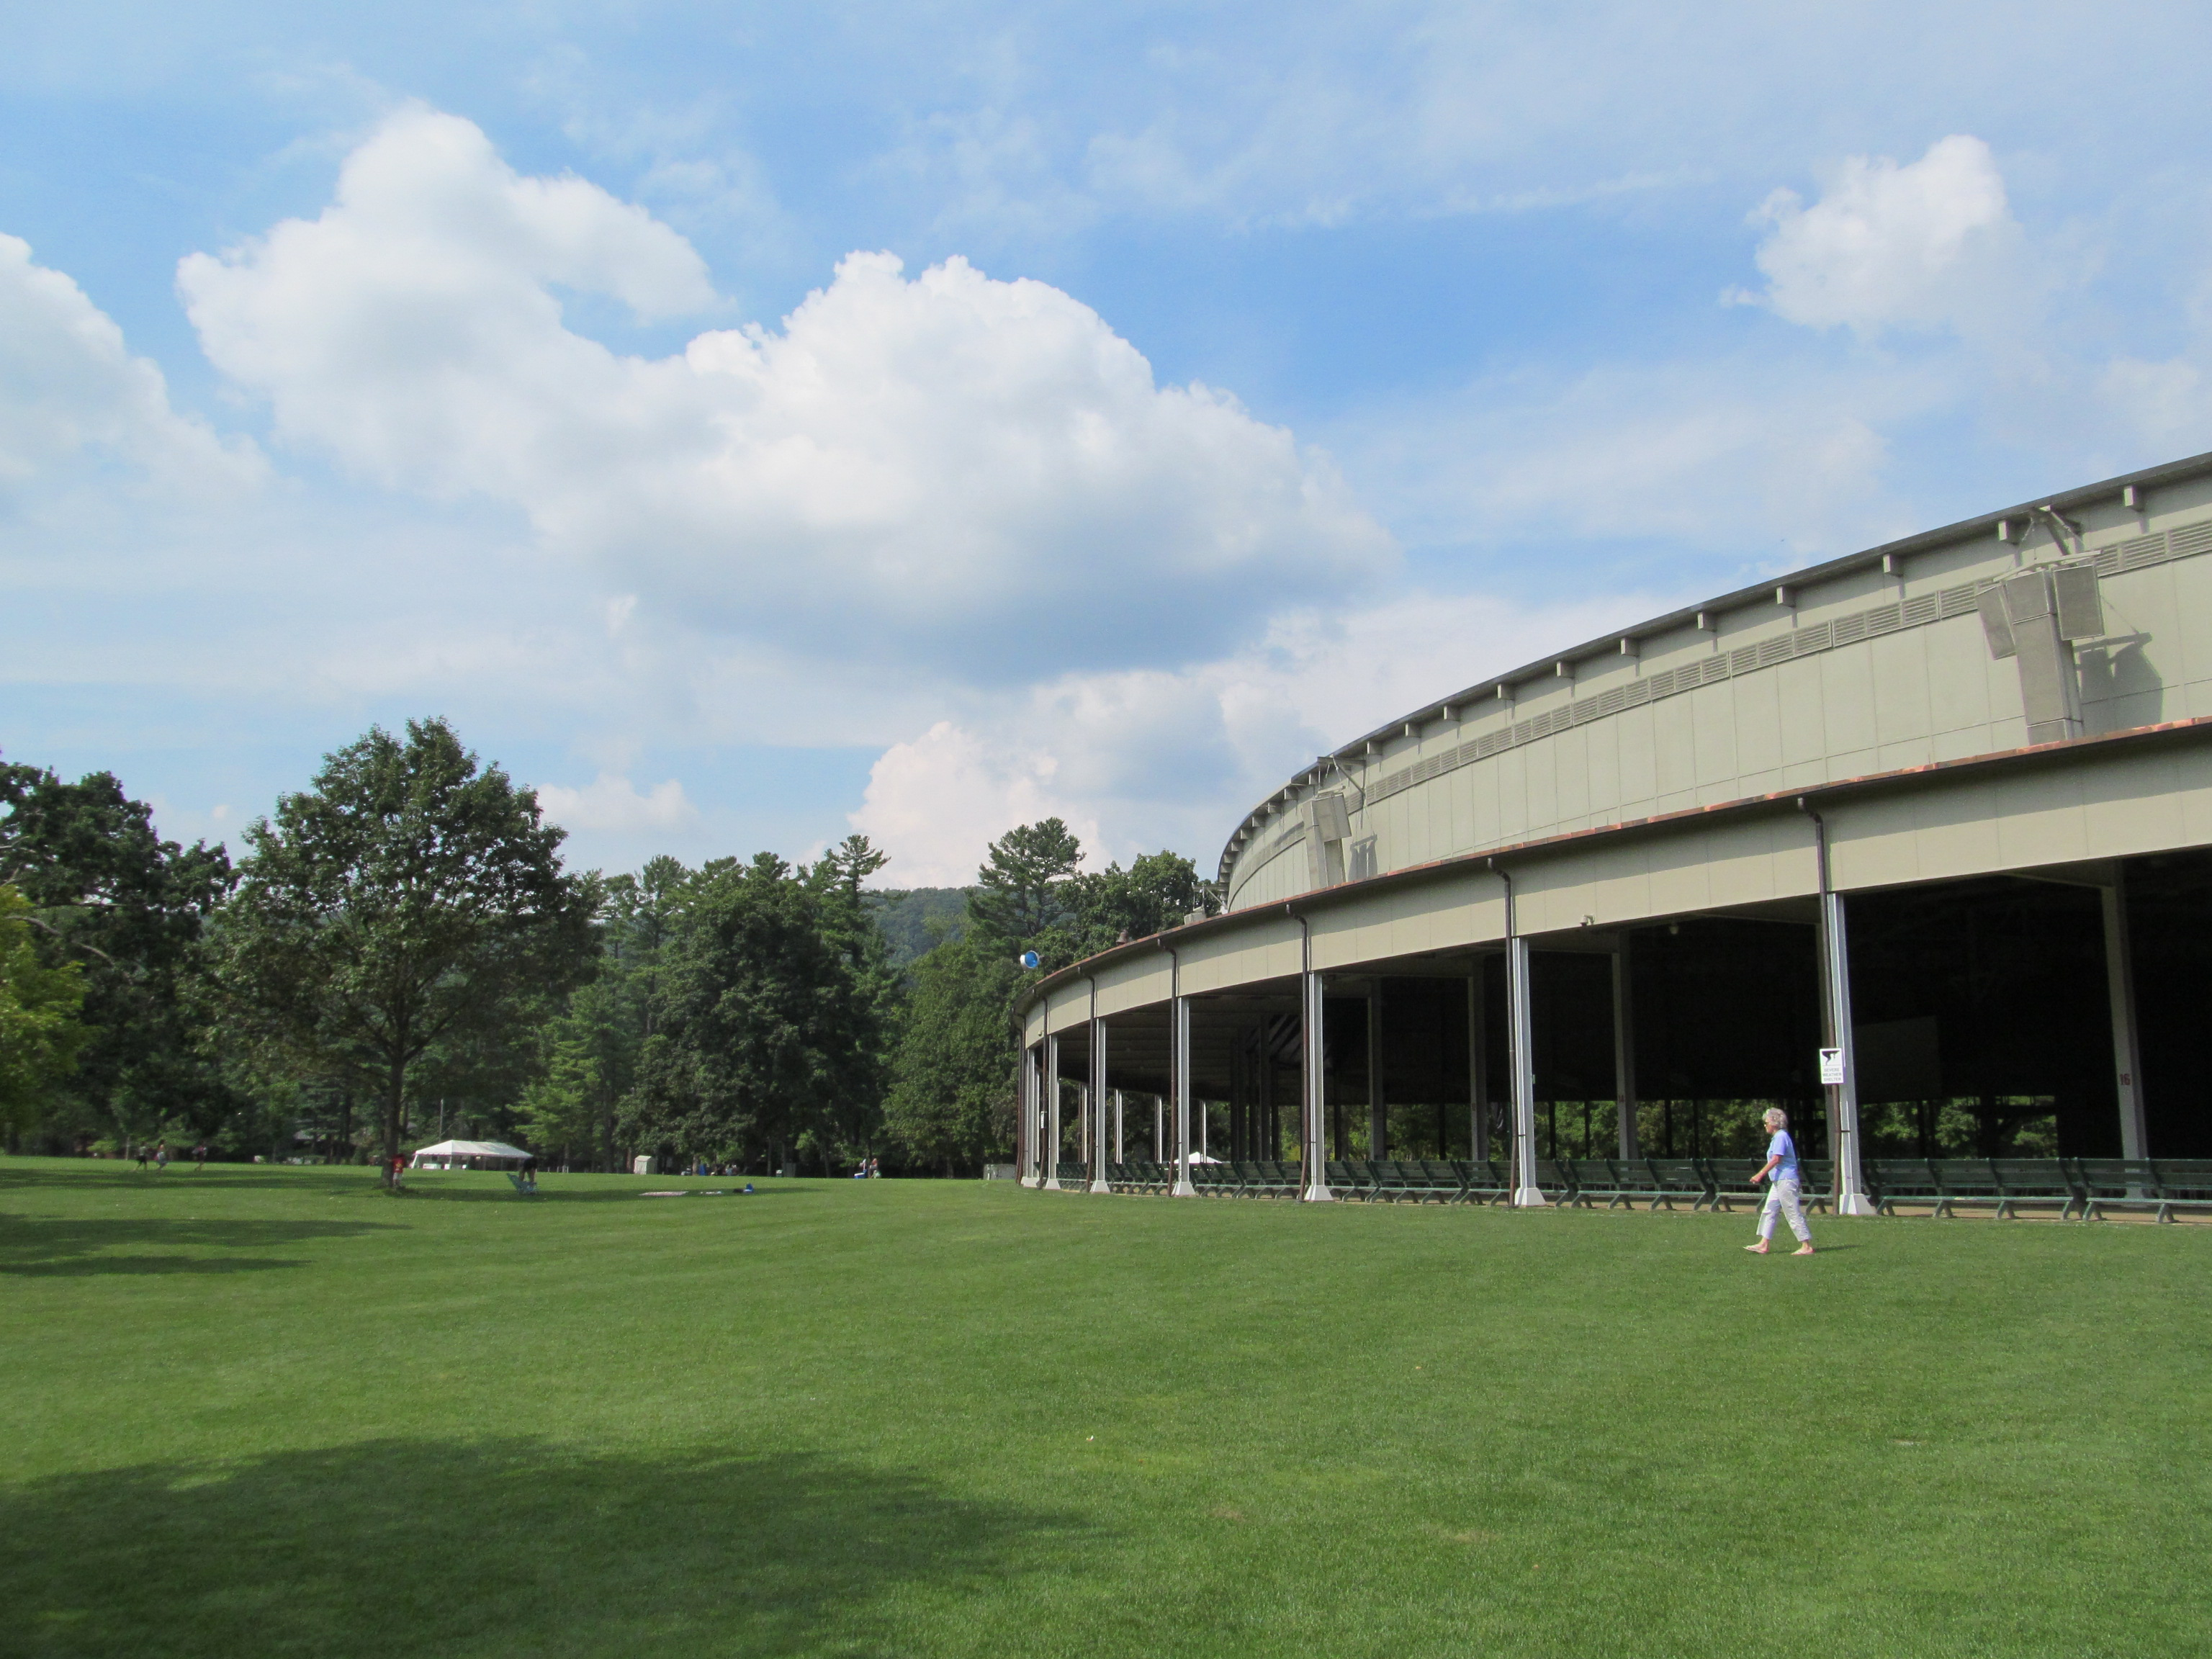 Opinions on tanglewood music center for The tanglewood